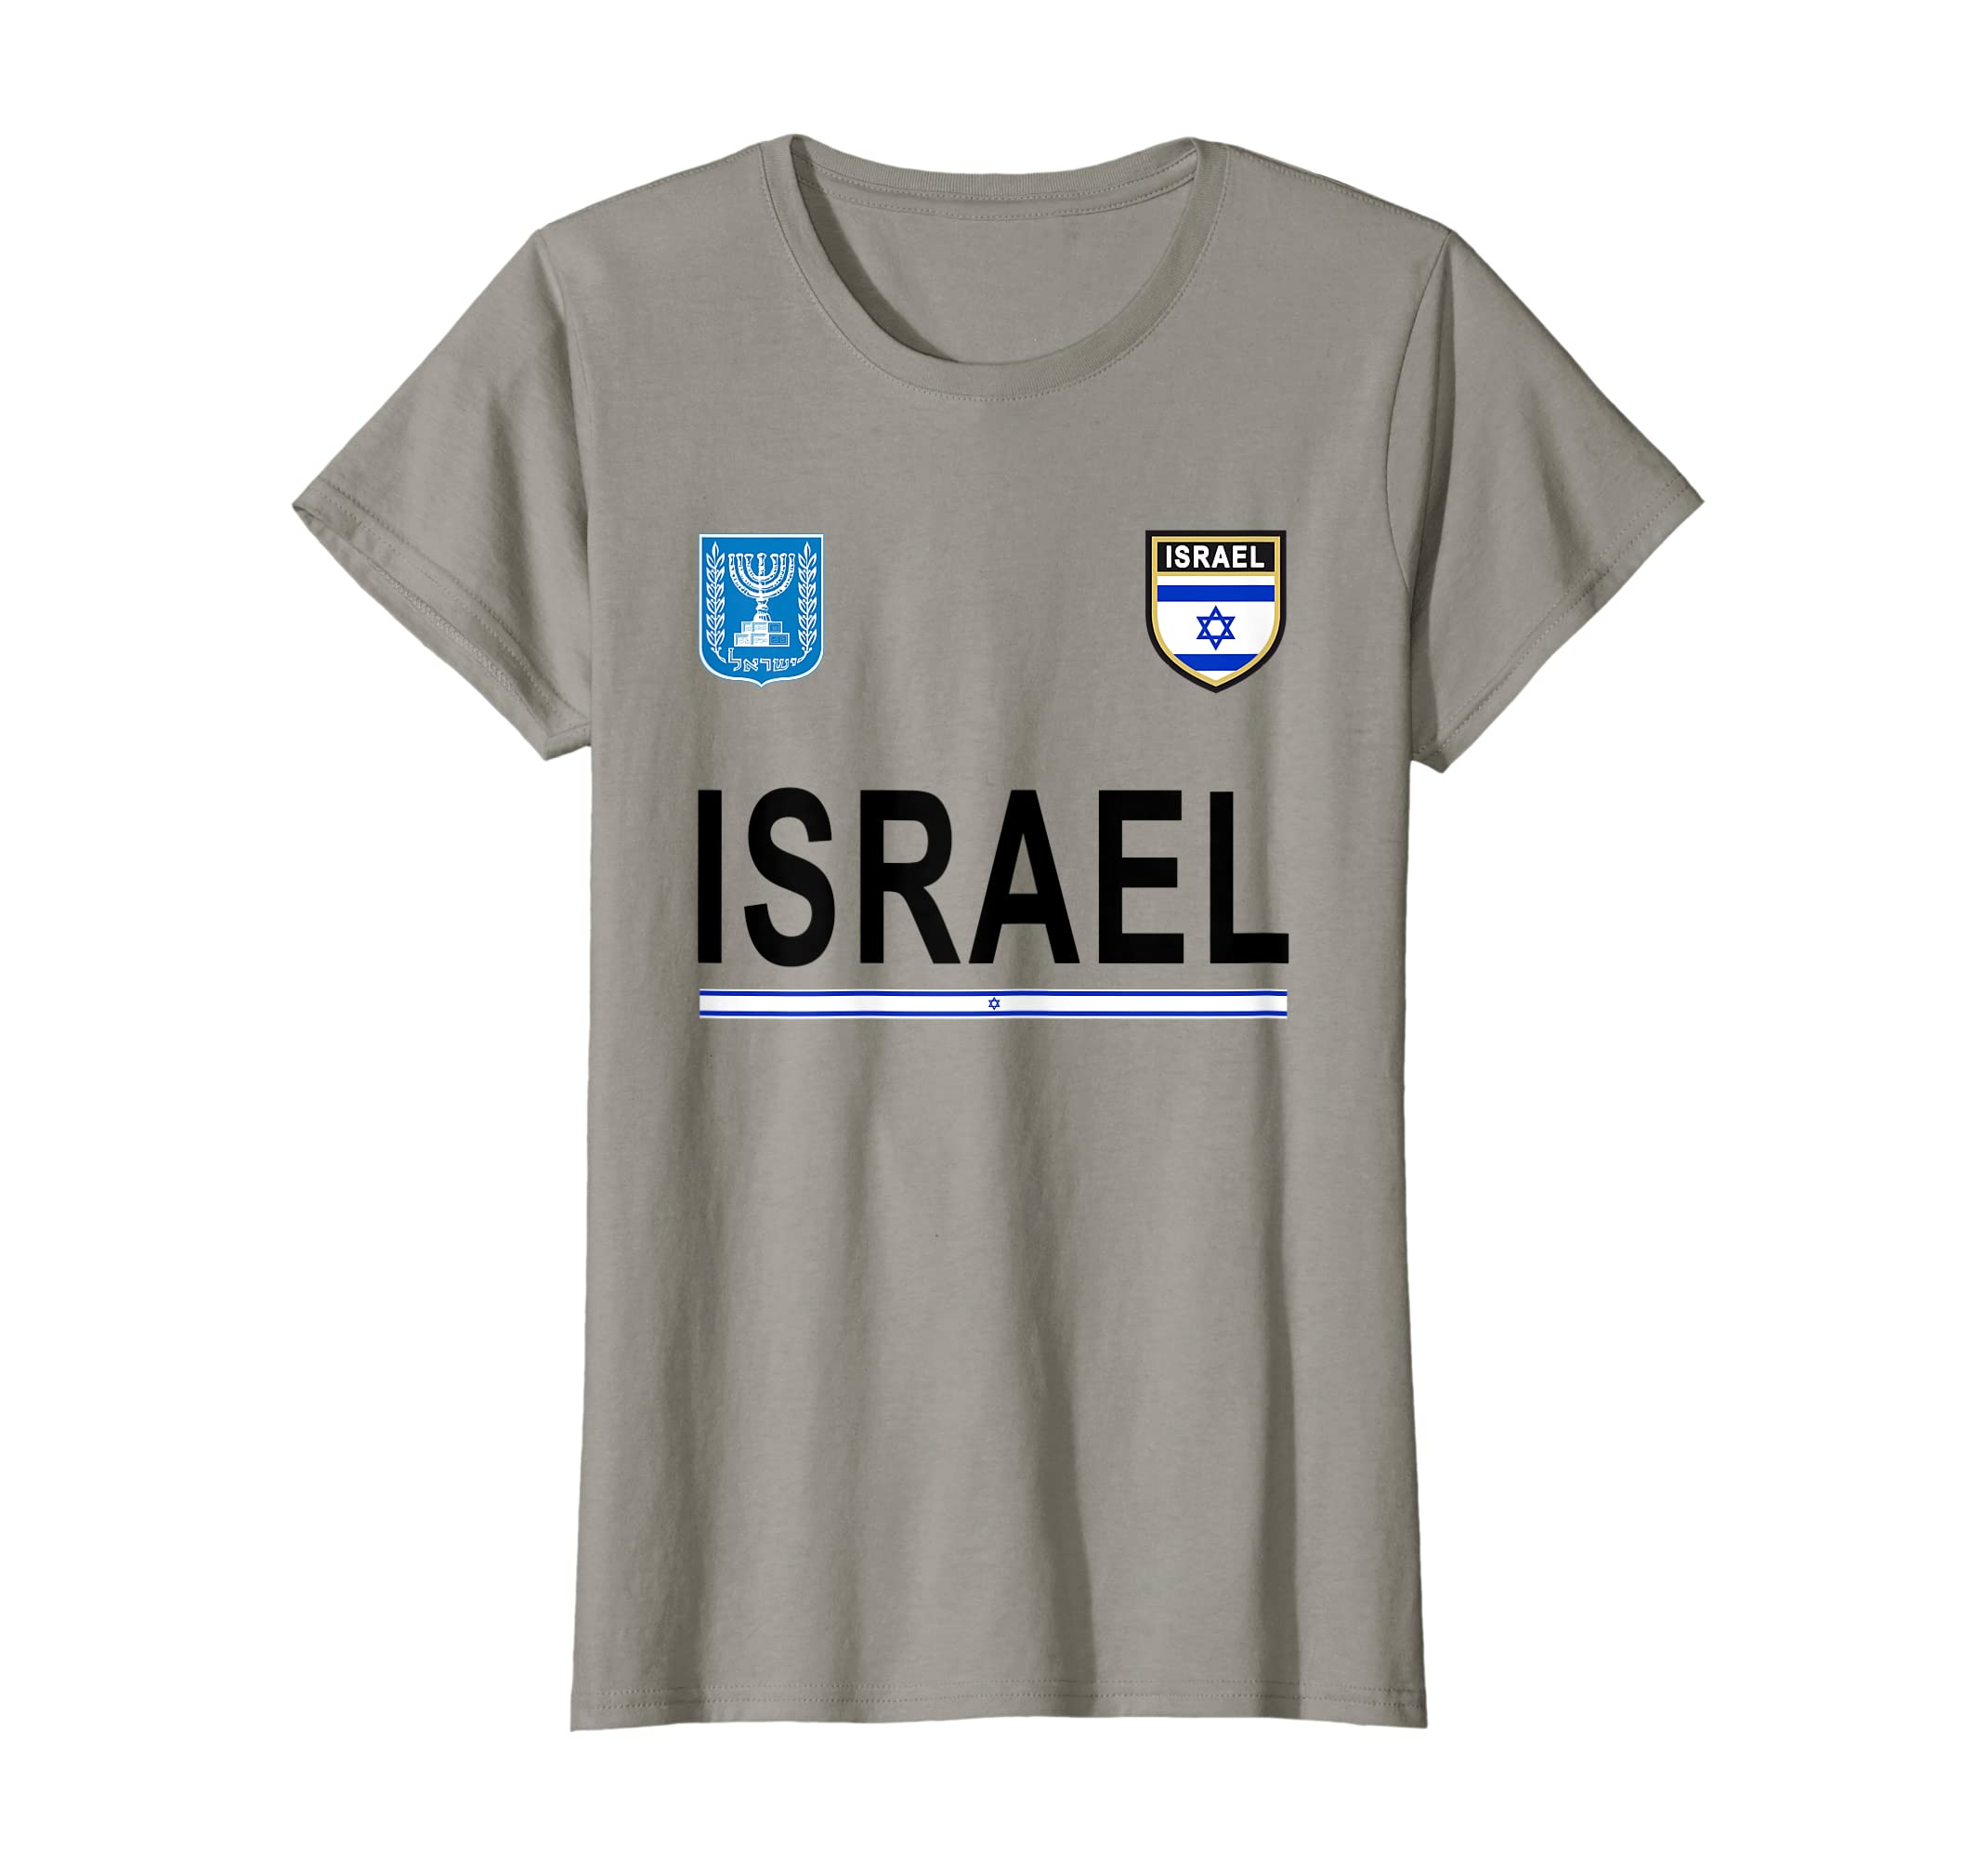 2de21bc4b Amazon.com  Israel Soccer T-Shirt - Israeli Retro Football Jersey 2017   Clothing